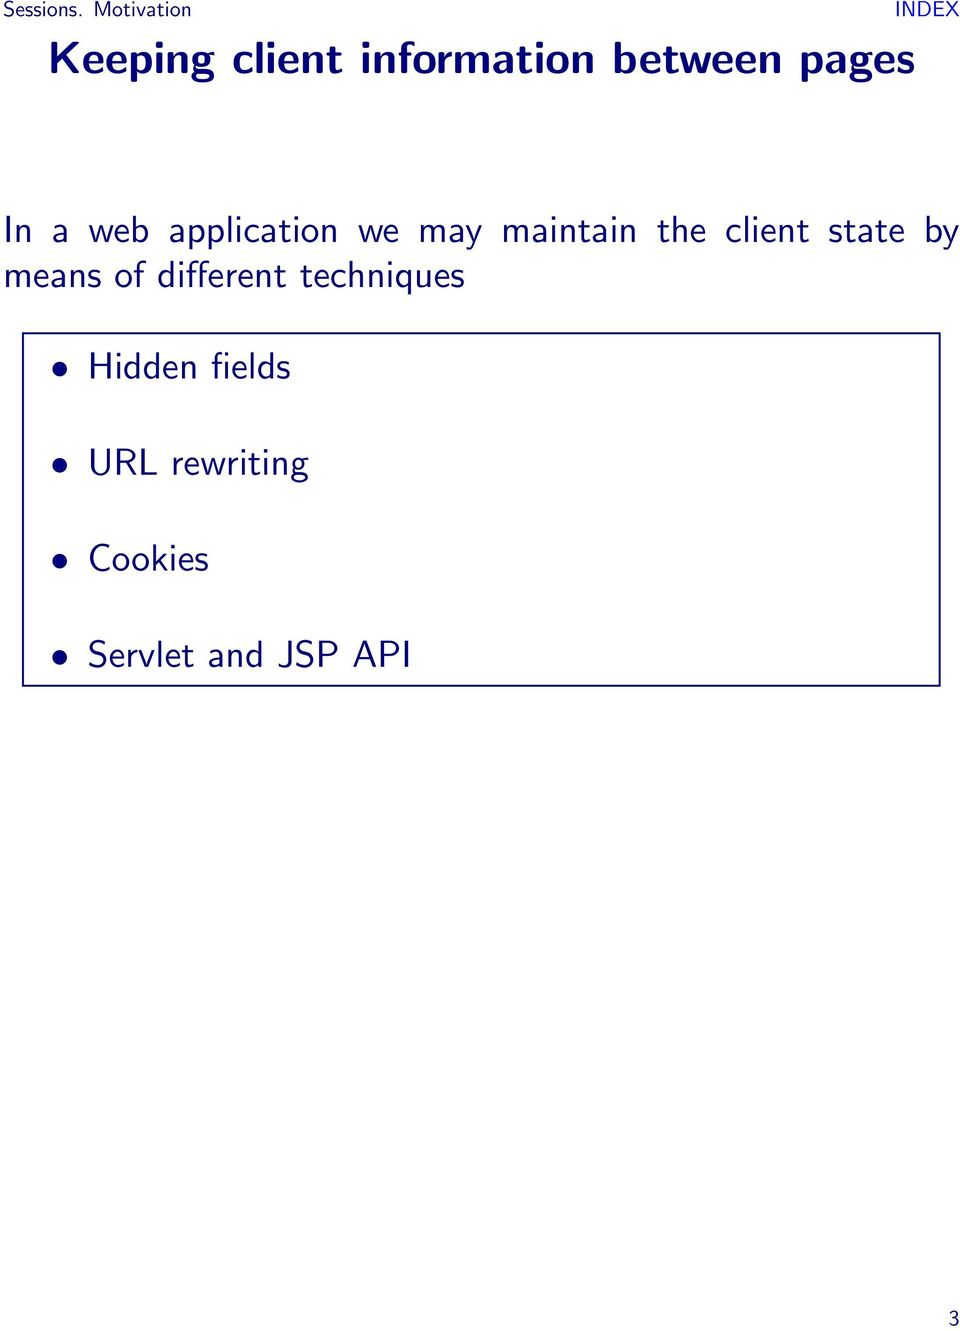 In a web application we may maintain the client